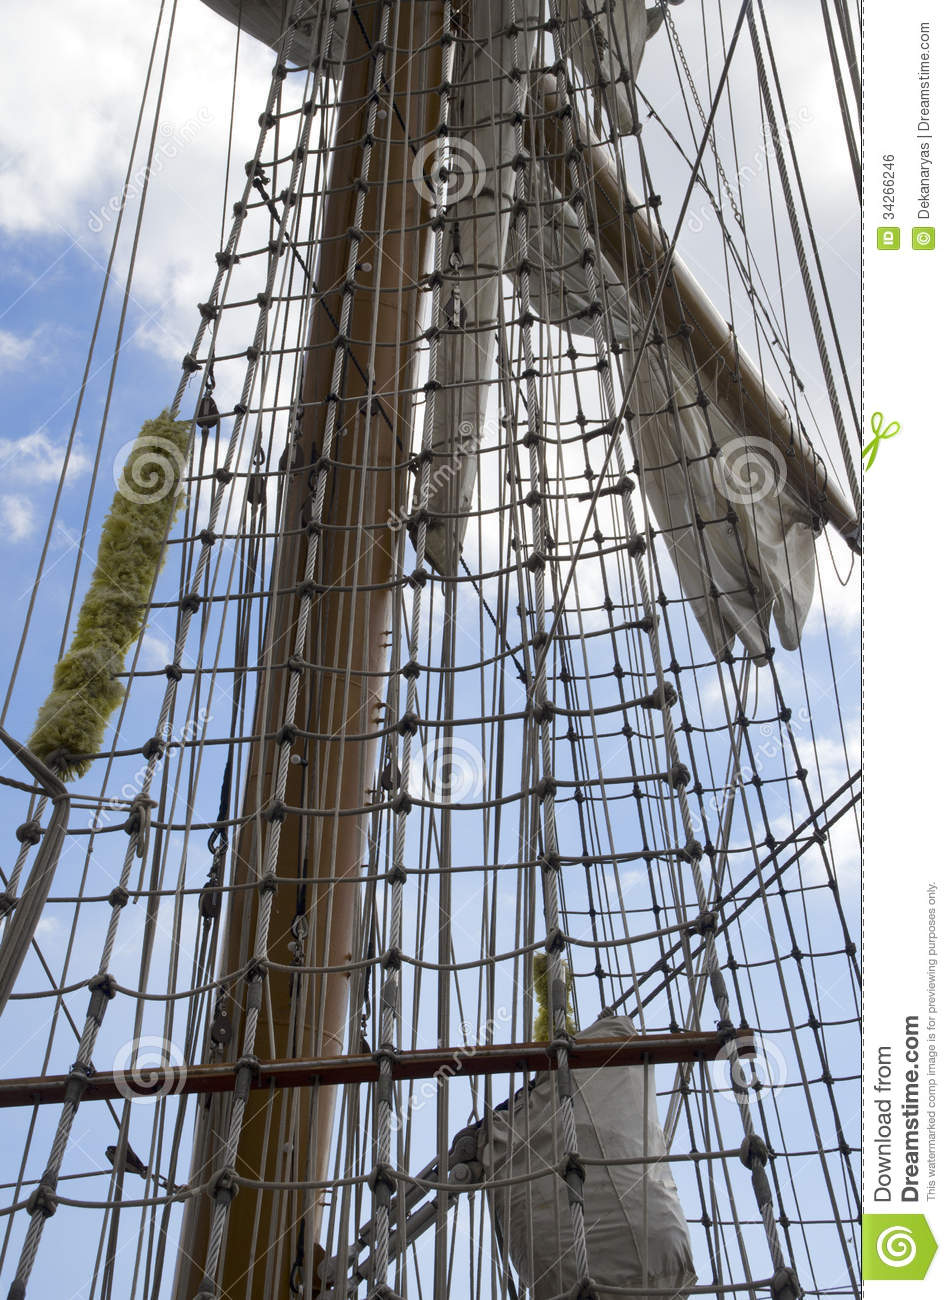 Marine Rope Ladder On The Sailing Ship Stock Photo - Image of ... for Rope Ladder Ship  49jwn